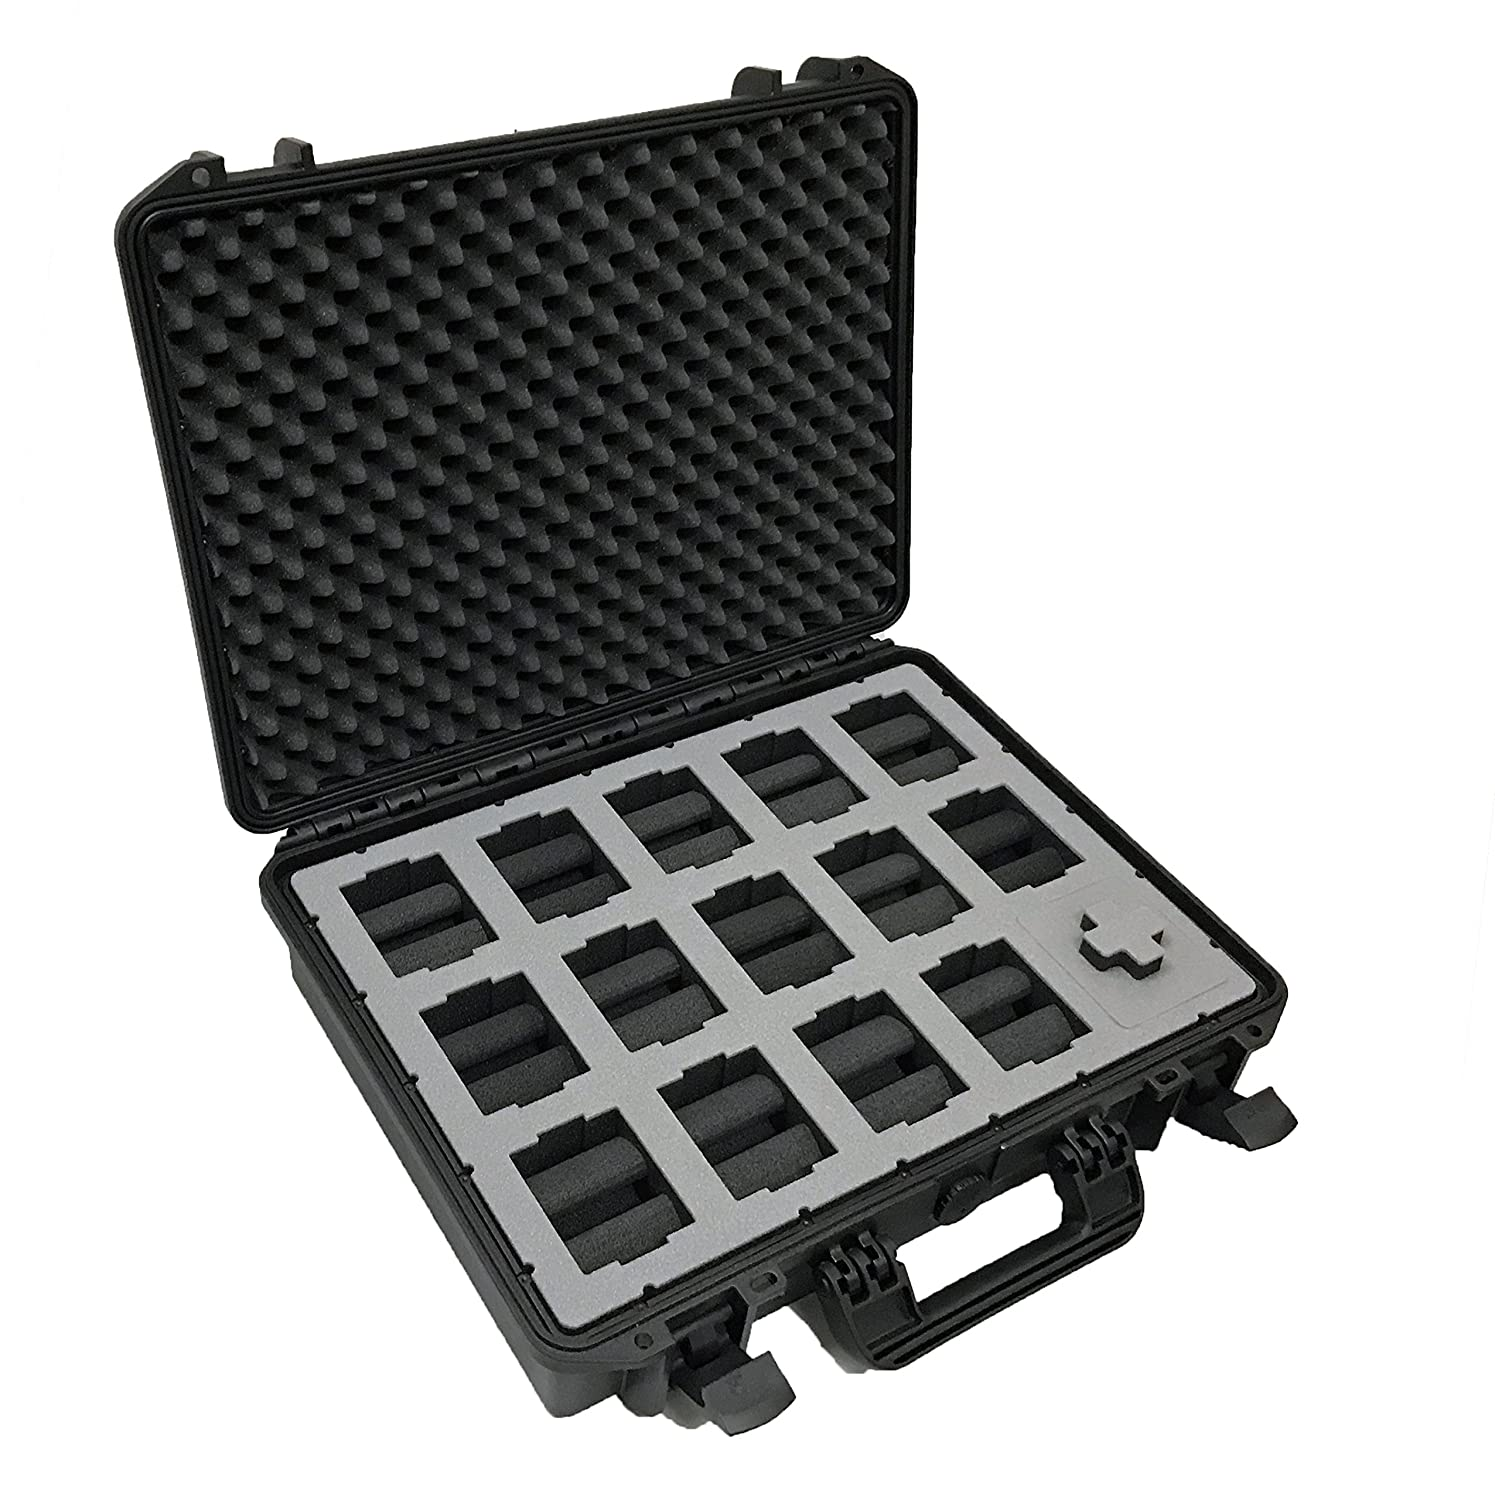 Amazon.com : MC-CASES Watch Travel Case for up to 14 Watches ...